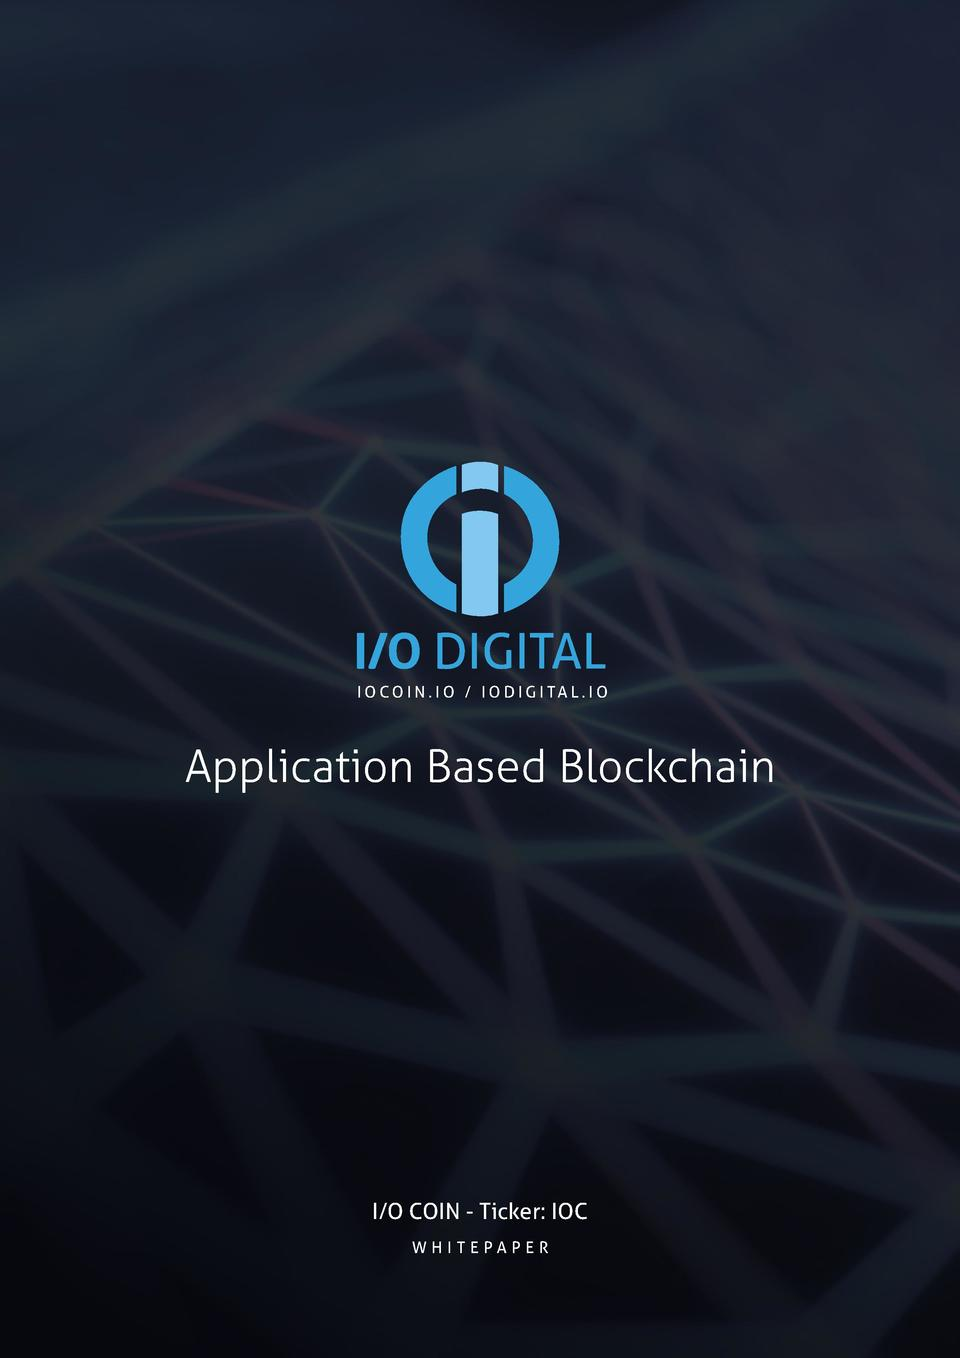 I O DIGITAL I O C O I N . I O   I O D I G I TA L . I O  Application Based Blockchain  I O COIN - Ticker  IOC WHITEPAPER